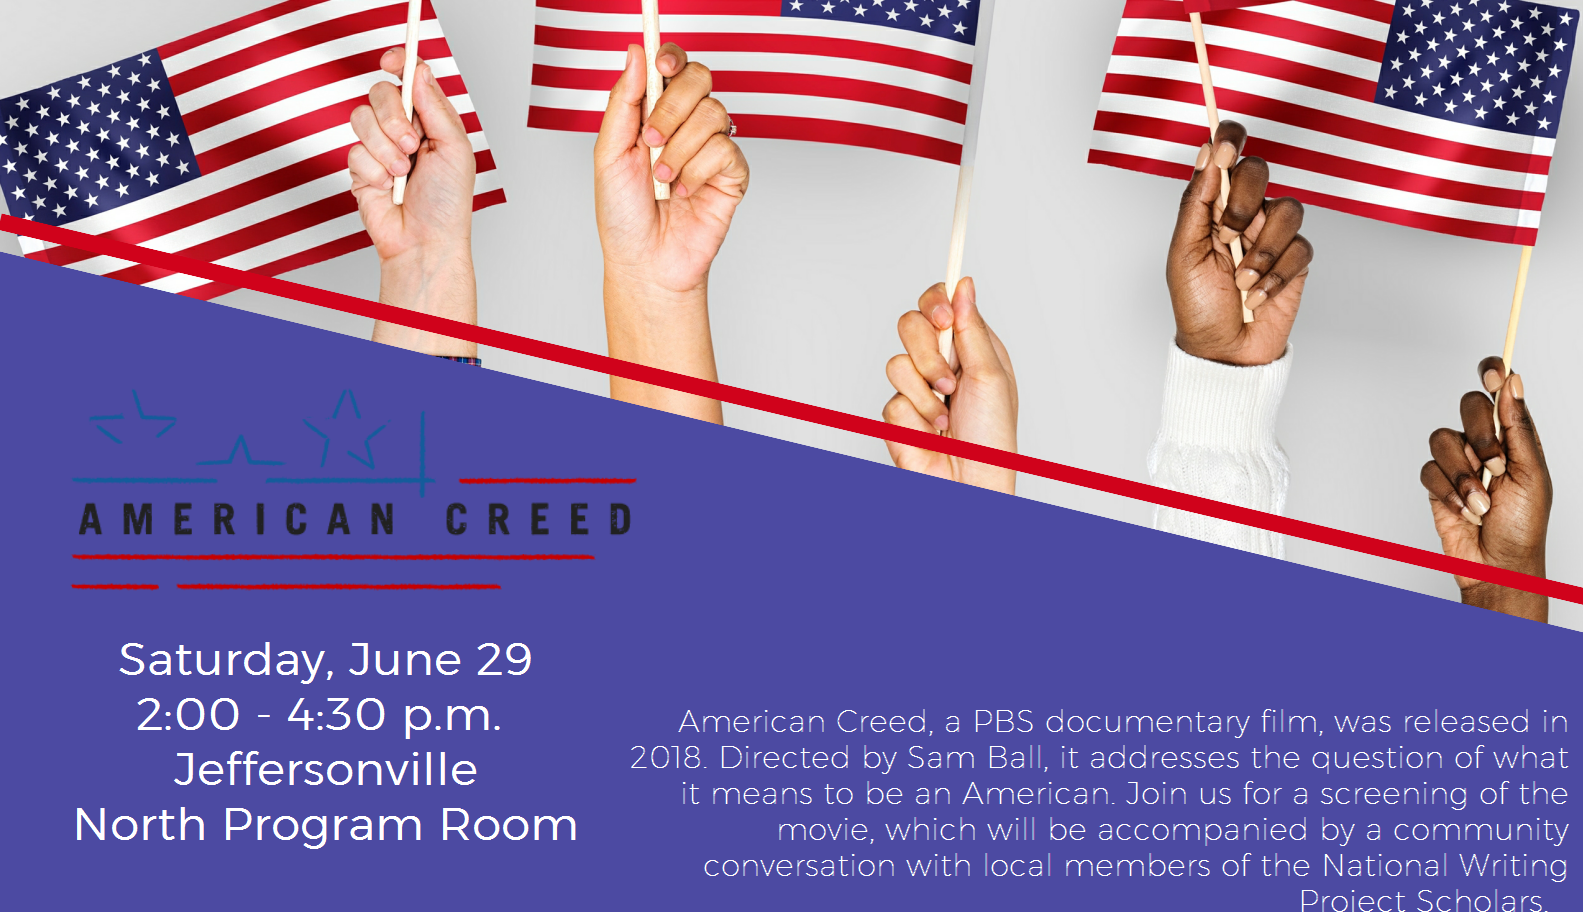 Flyer for American Creed program